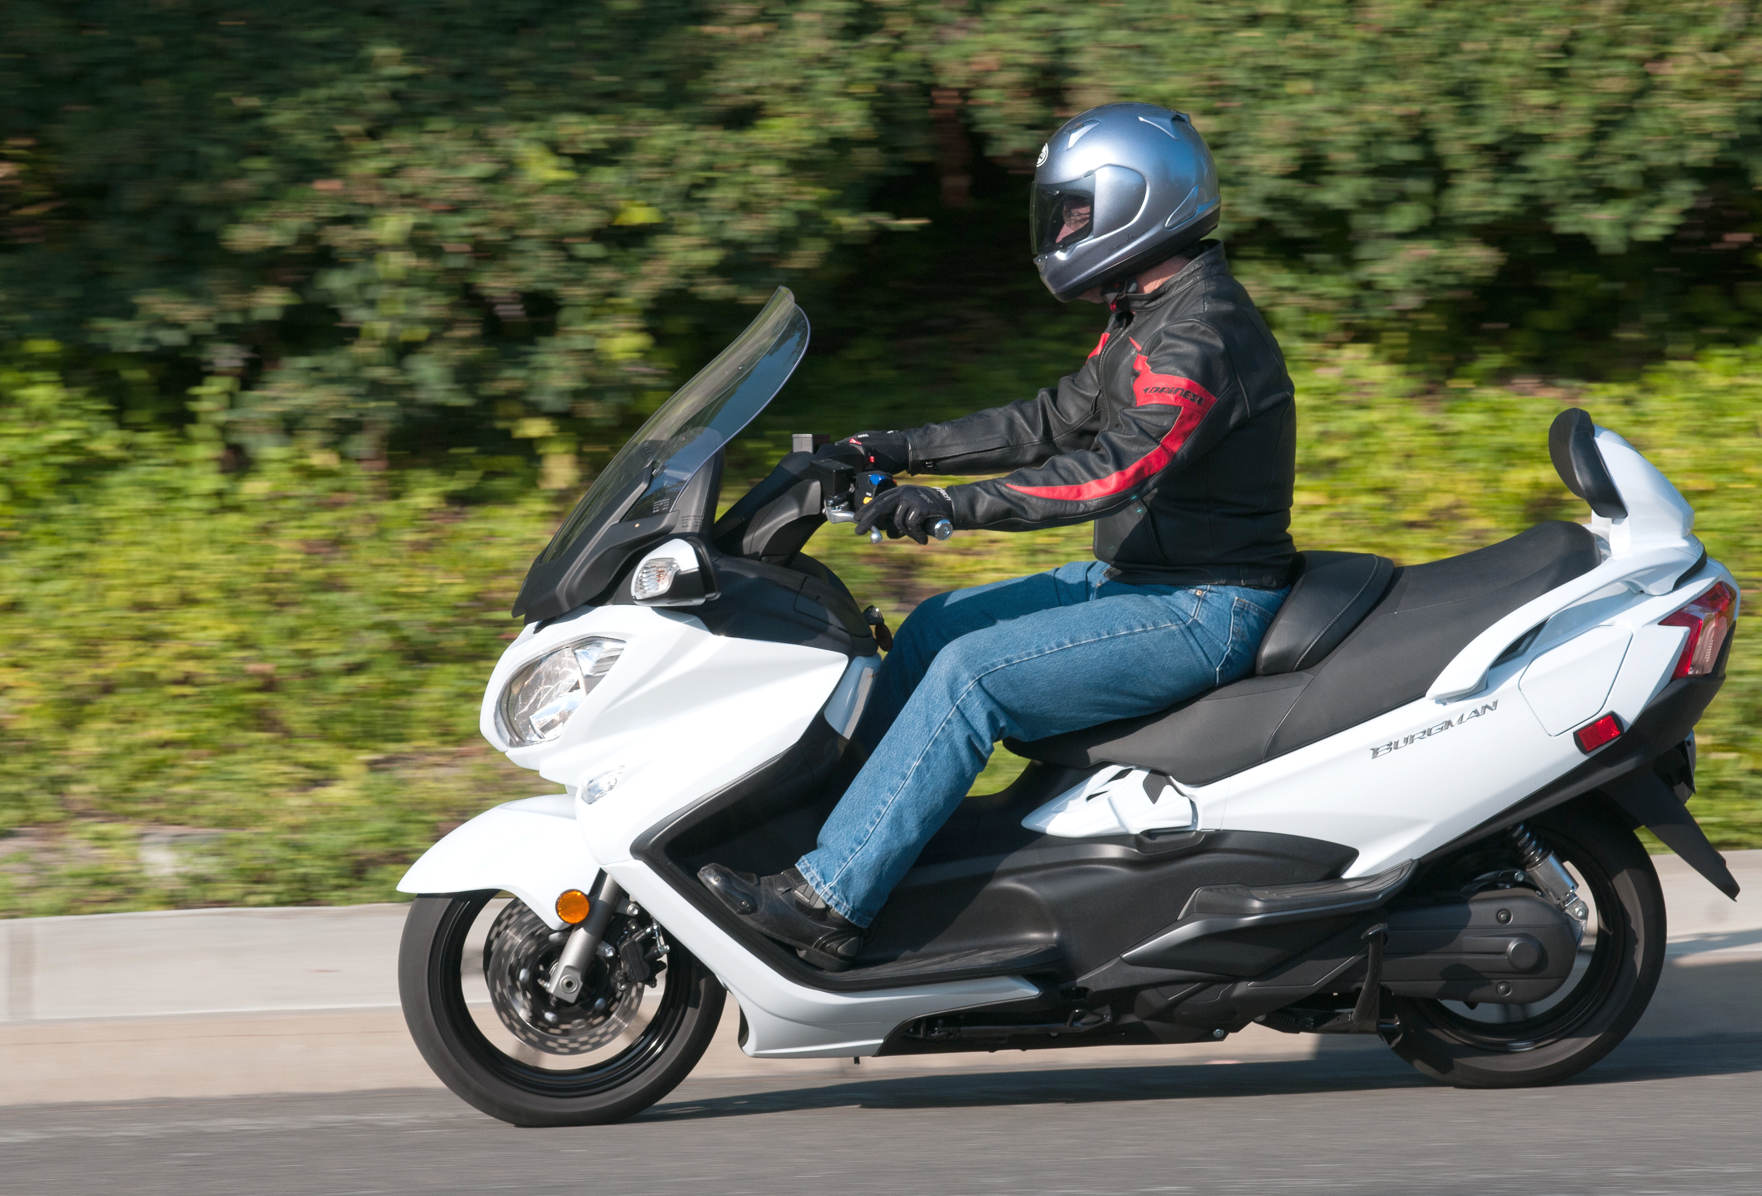 The first scooter tested by MD was the 2002 Honda Silver Wing. Up until  that point, it seemed rather unlikely that MD would test scooters at all.